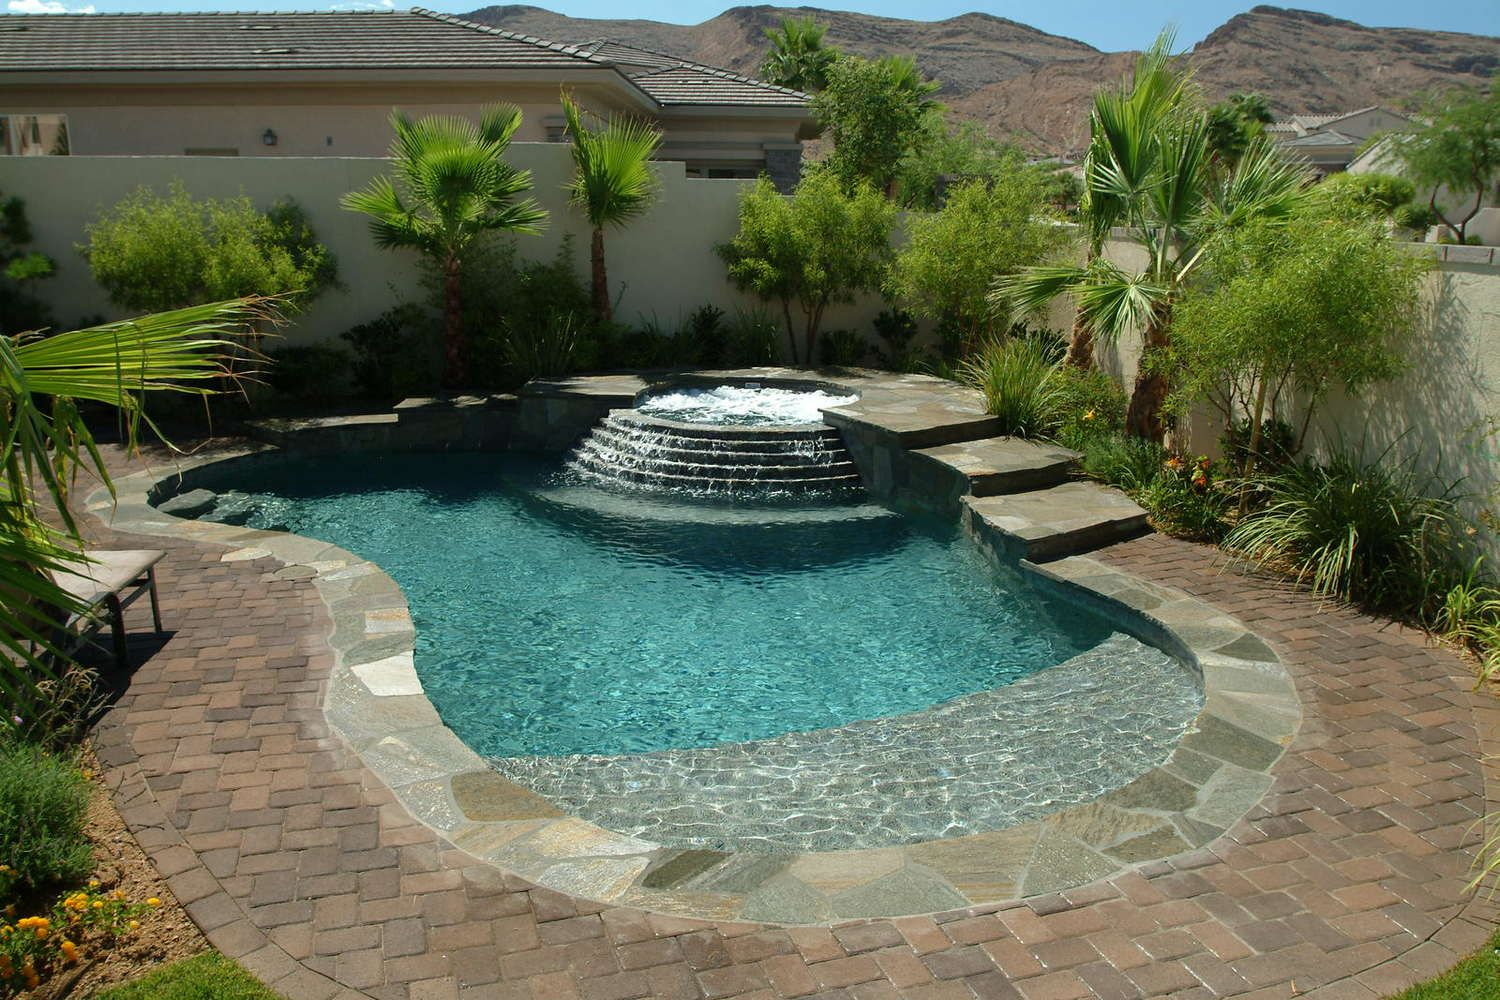 Small Pools California Pools Small Pool Design Pools For Small Yards Small Swimming Pools